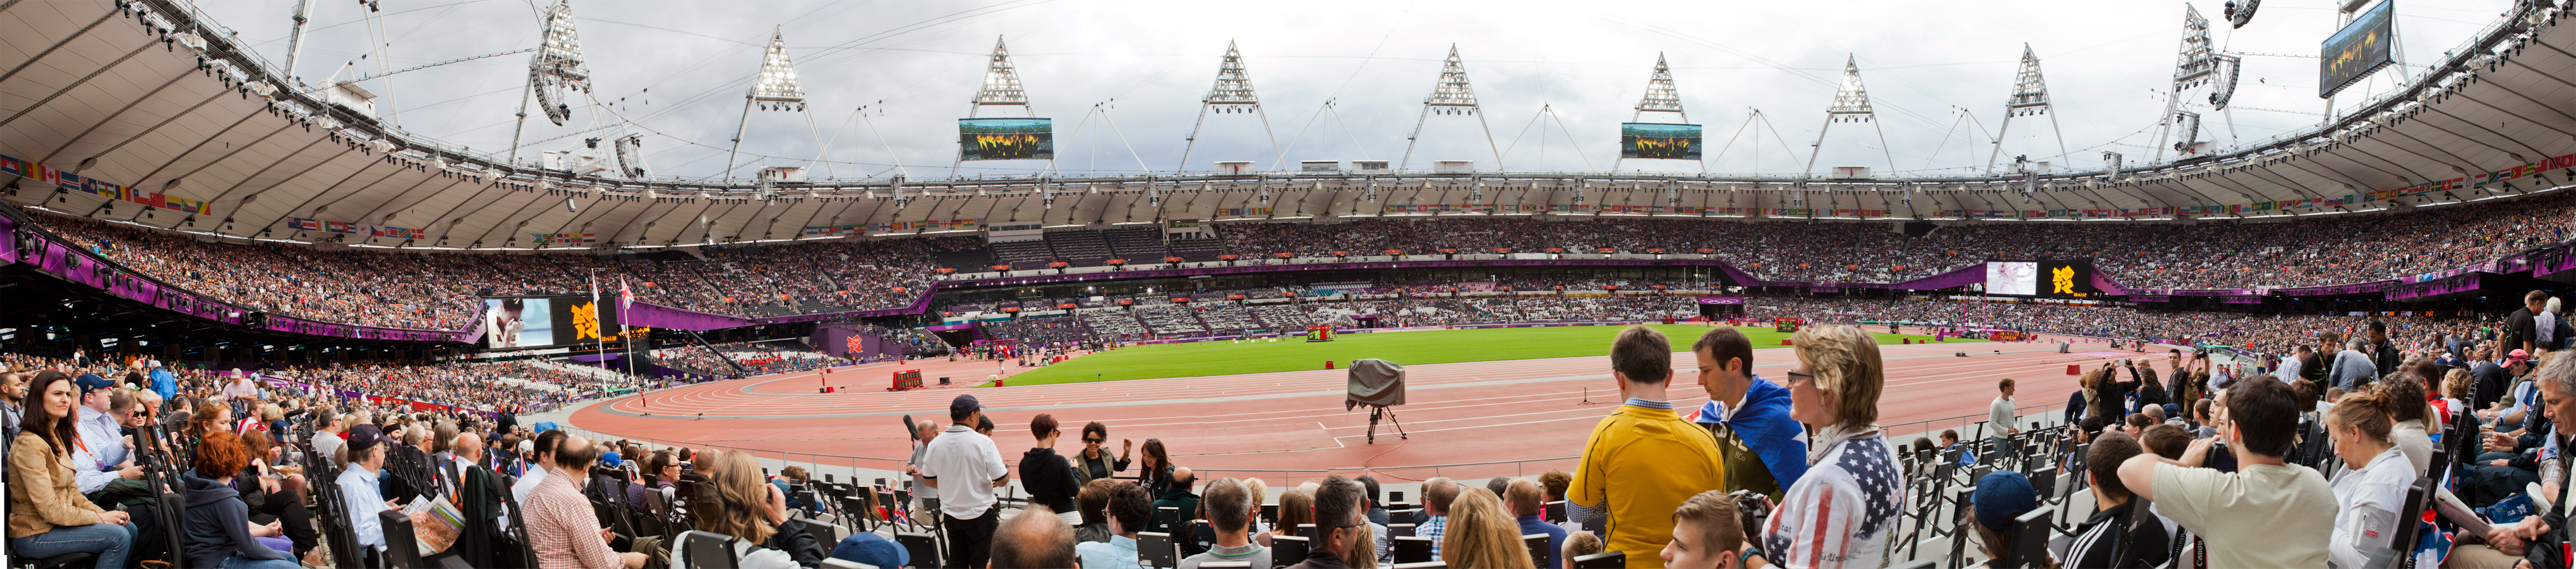 Panorama of the London 2012 Olympic Stadium from row 9